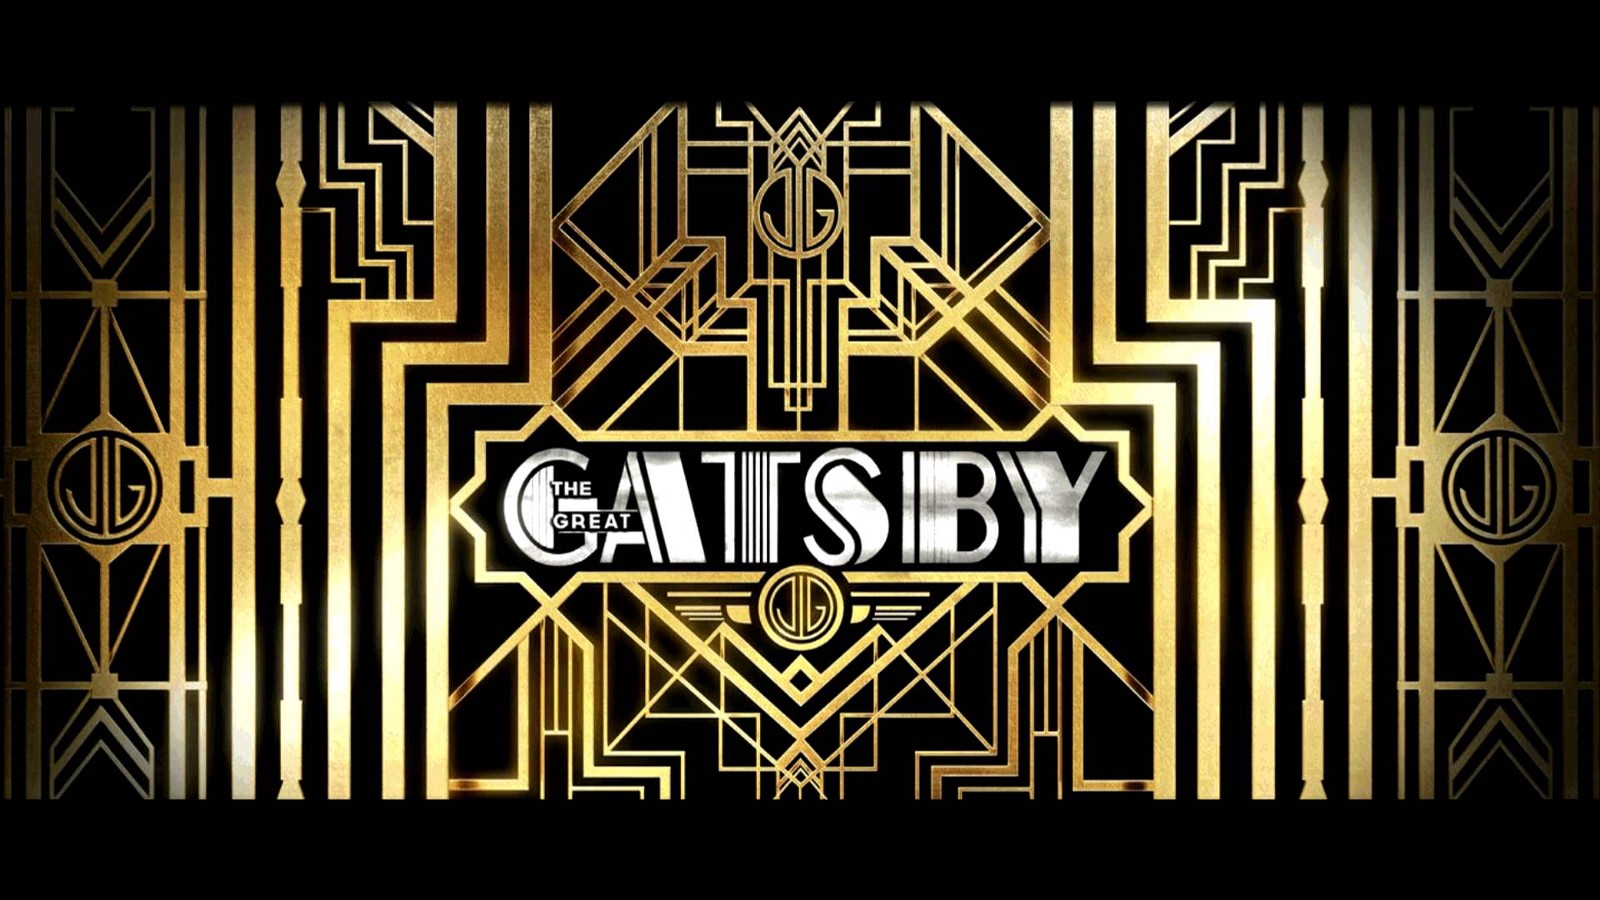 the great gatsby and modernism